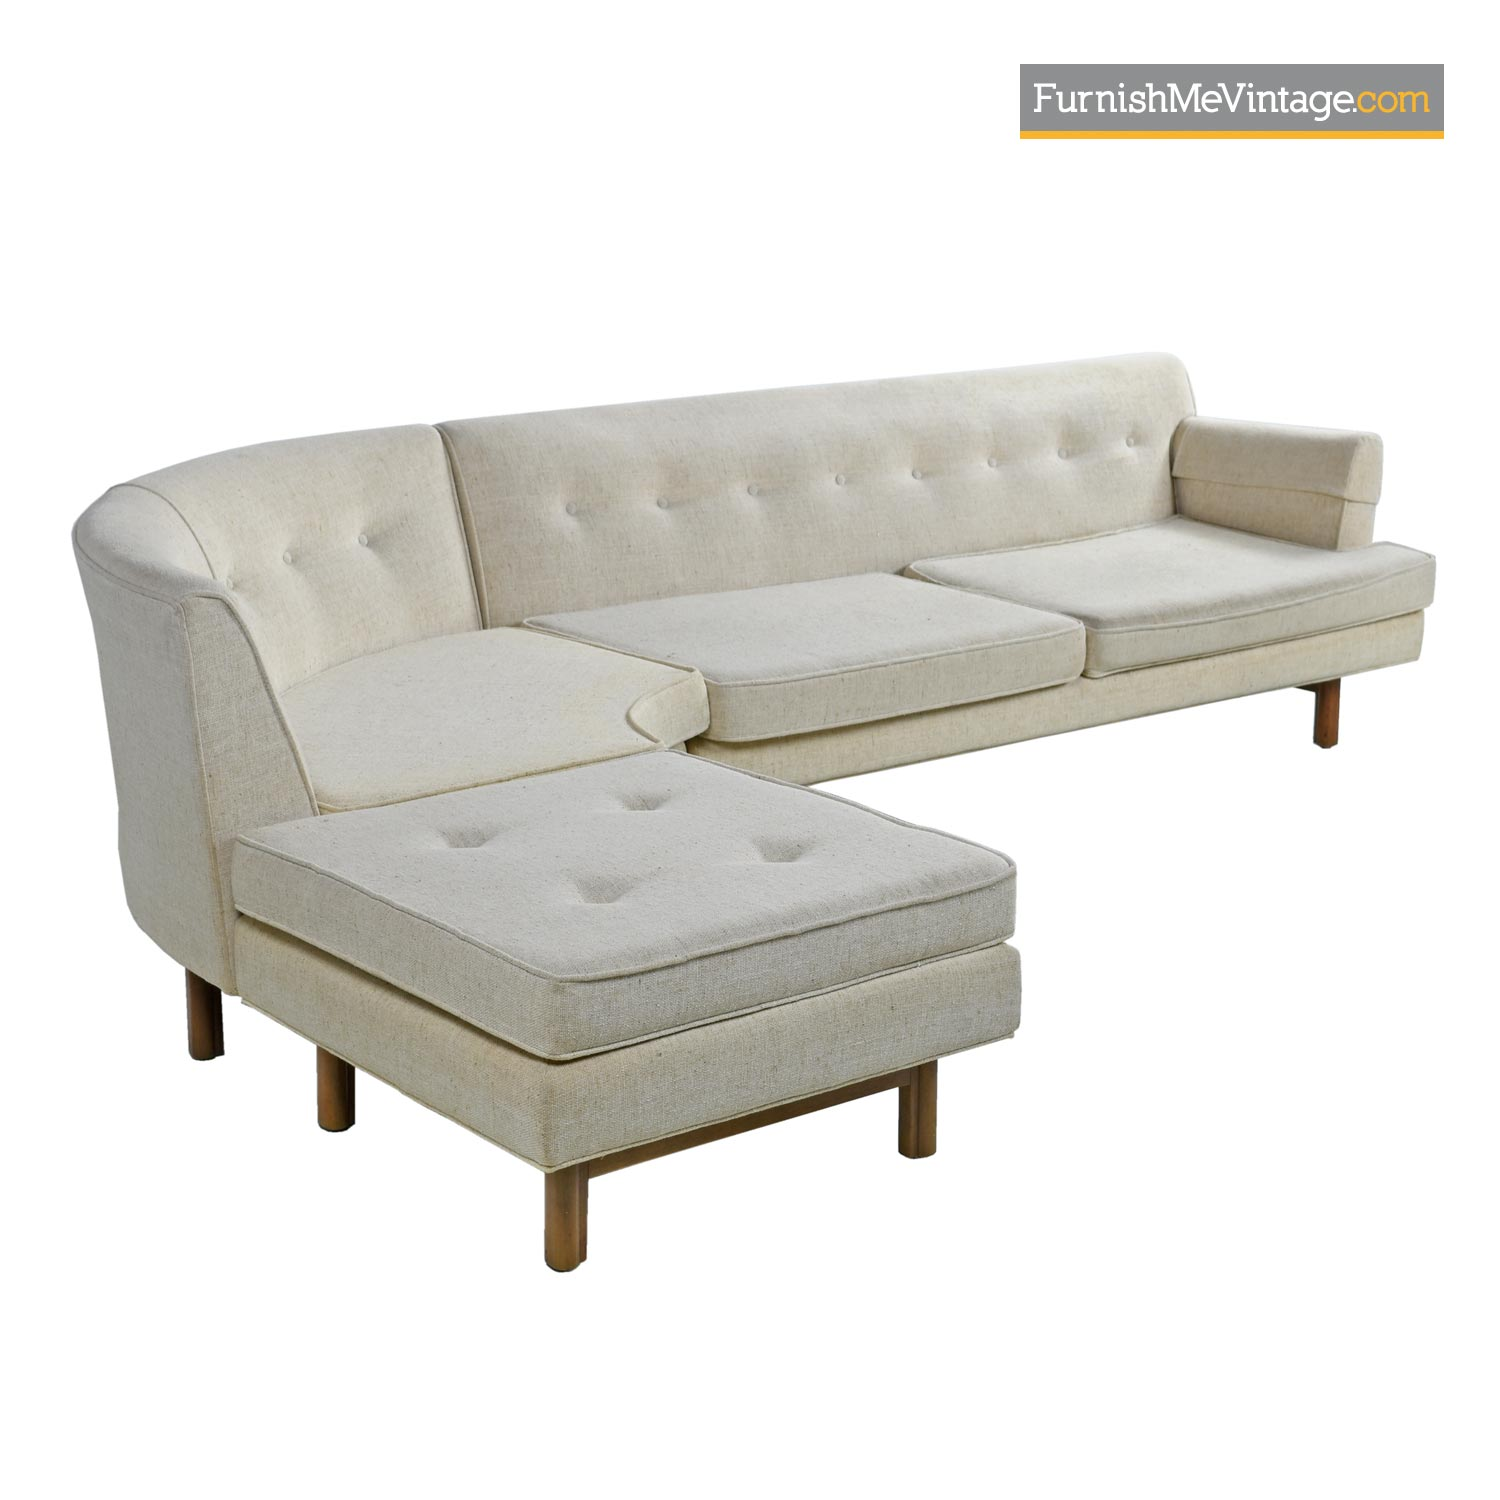 edward wormley style mid century modern tufted sectional sofa couch